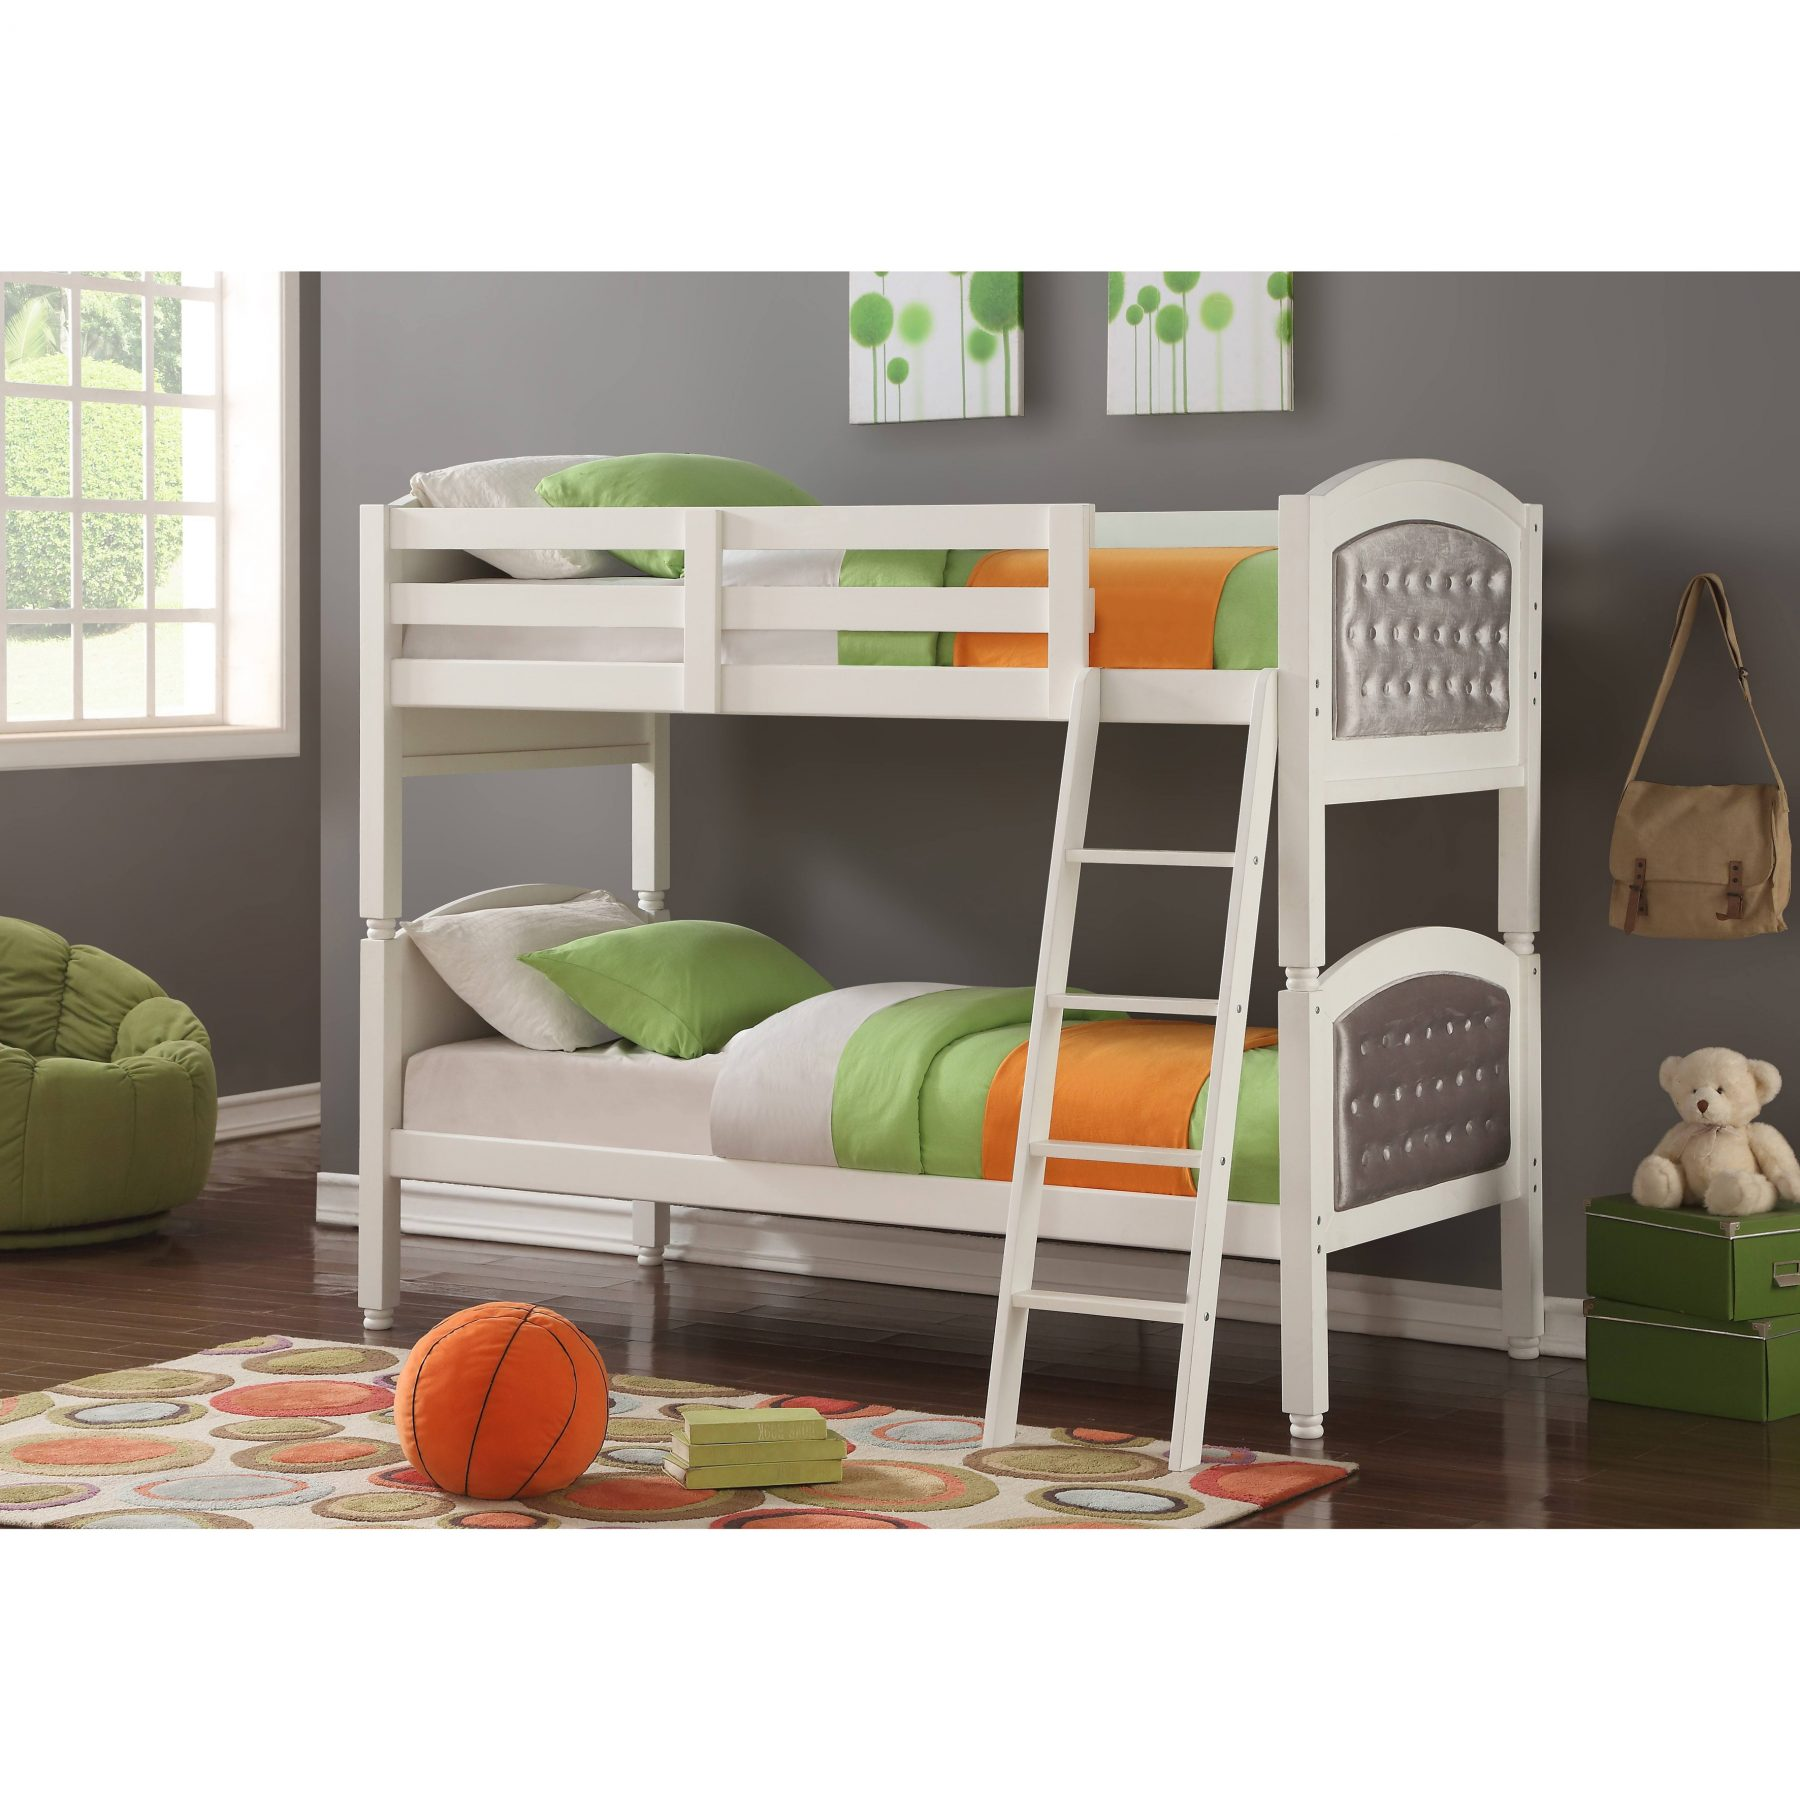 Elisa Fabric Bunk Bed